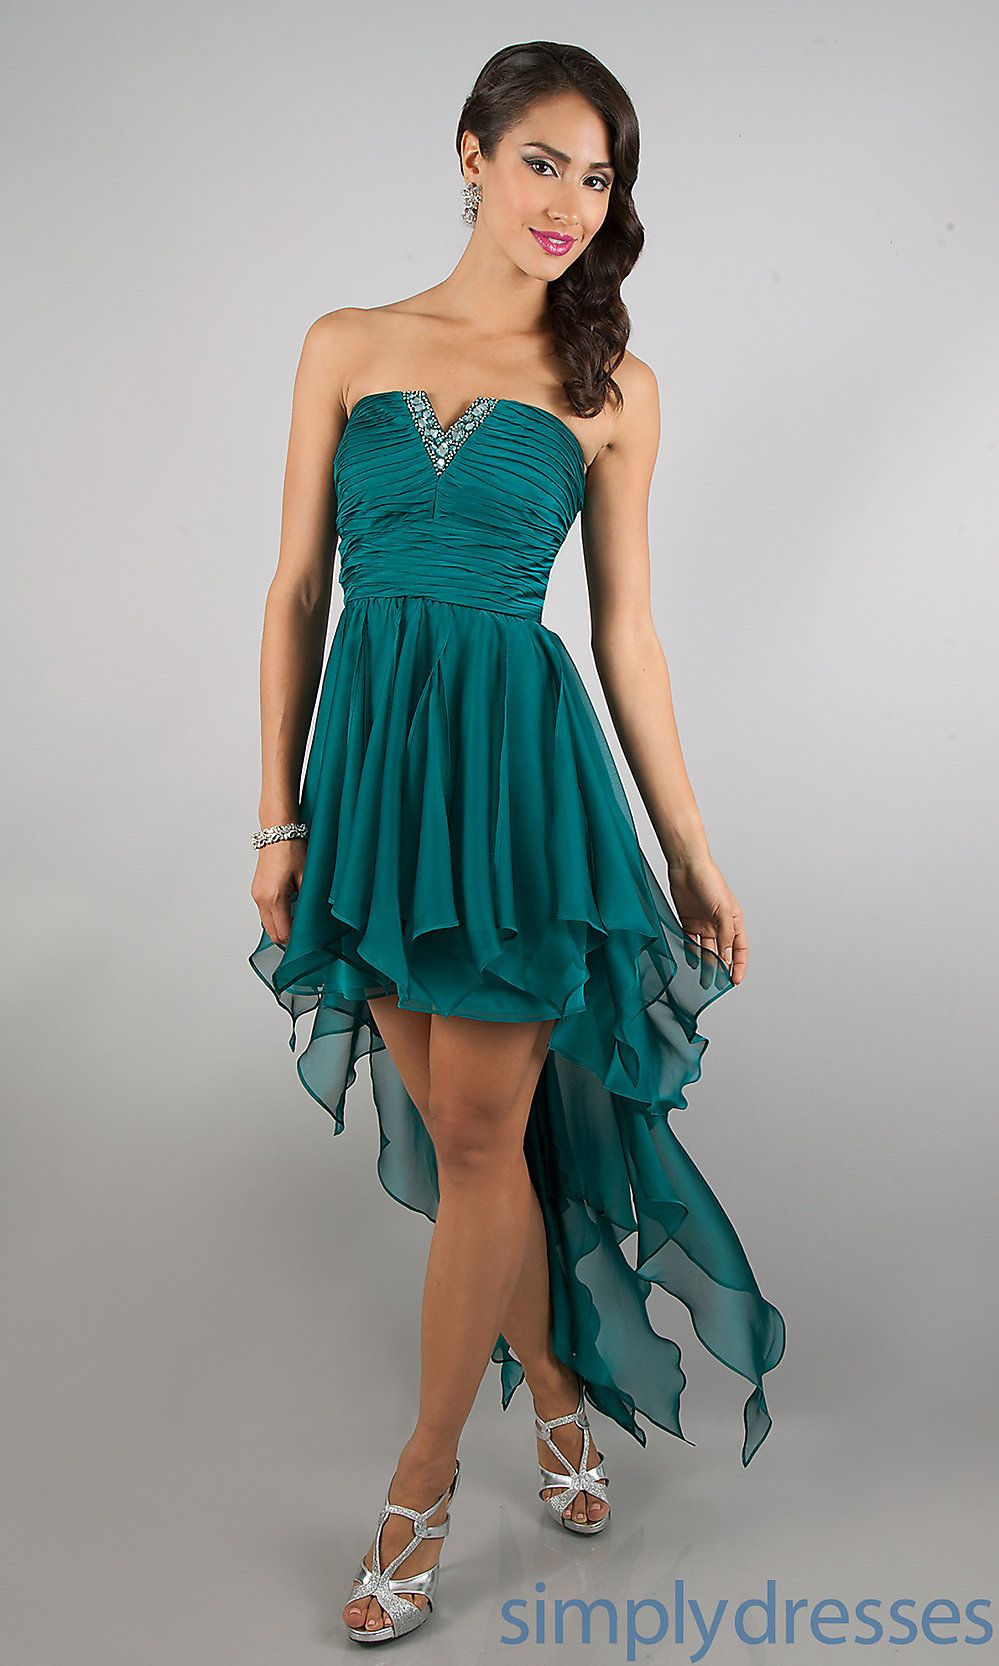 Morgan Party Dresses, High Low Semi Formal Dress, Simply Dresses ...